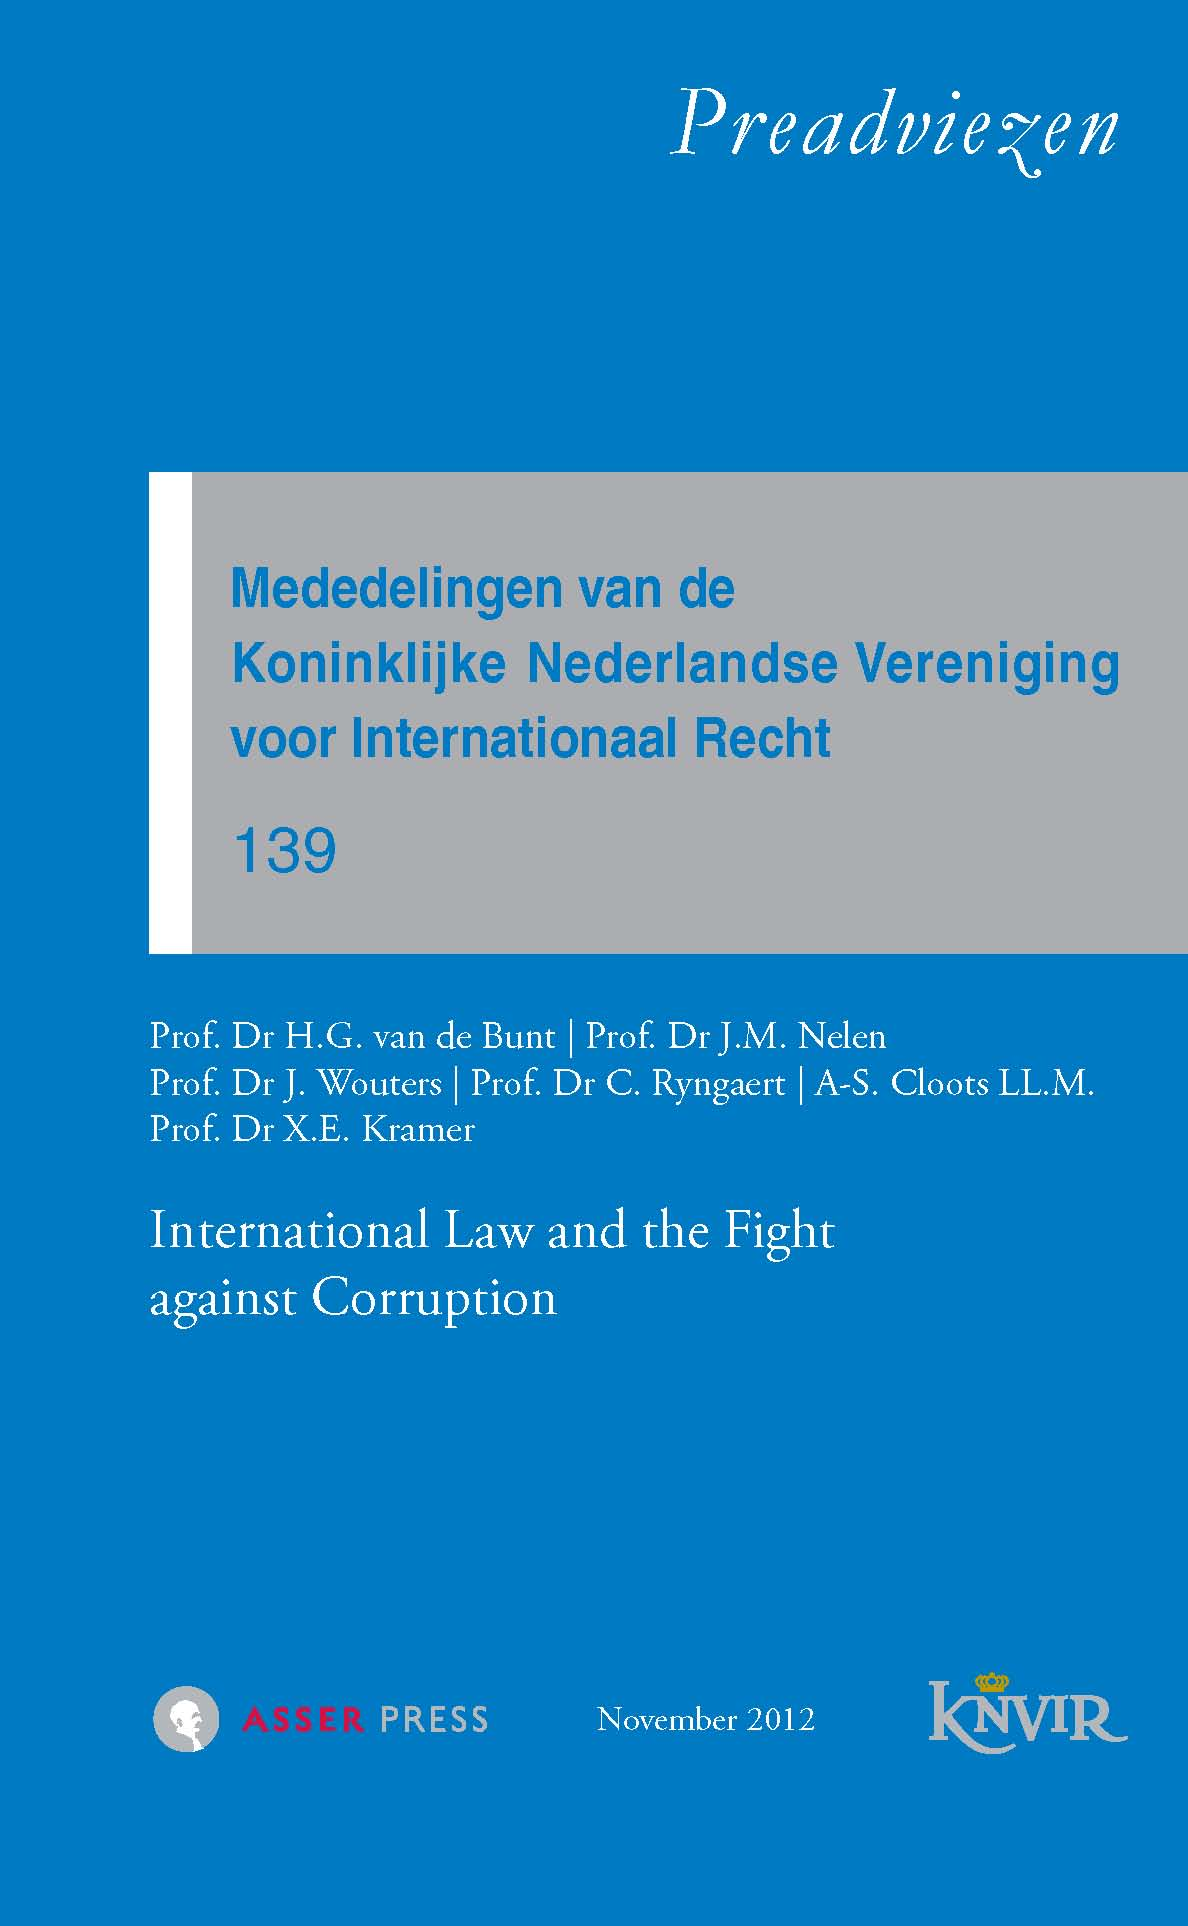 Mededelingen van de Koninklijke Nederlandse Vereniging voor Internationaal Recht – Nr. 139 – International Law and the Fight against Corruption